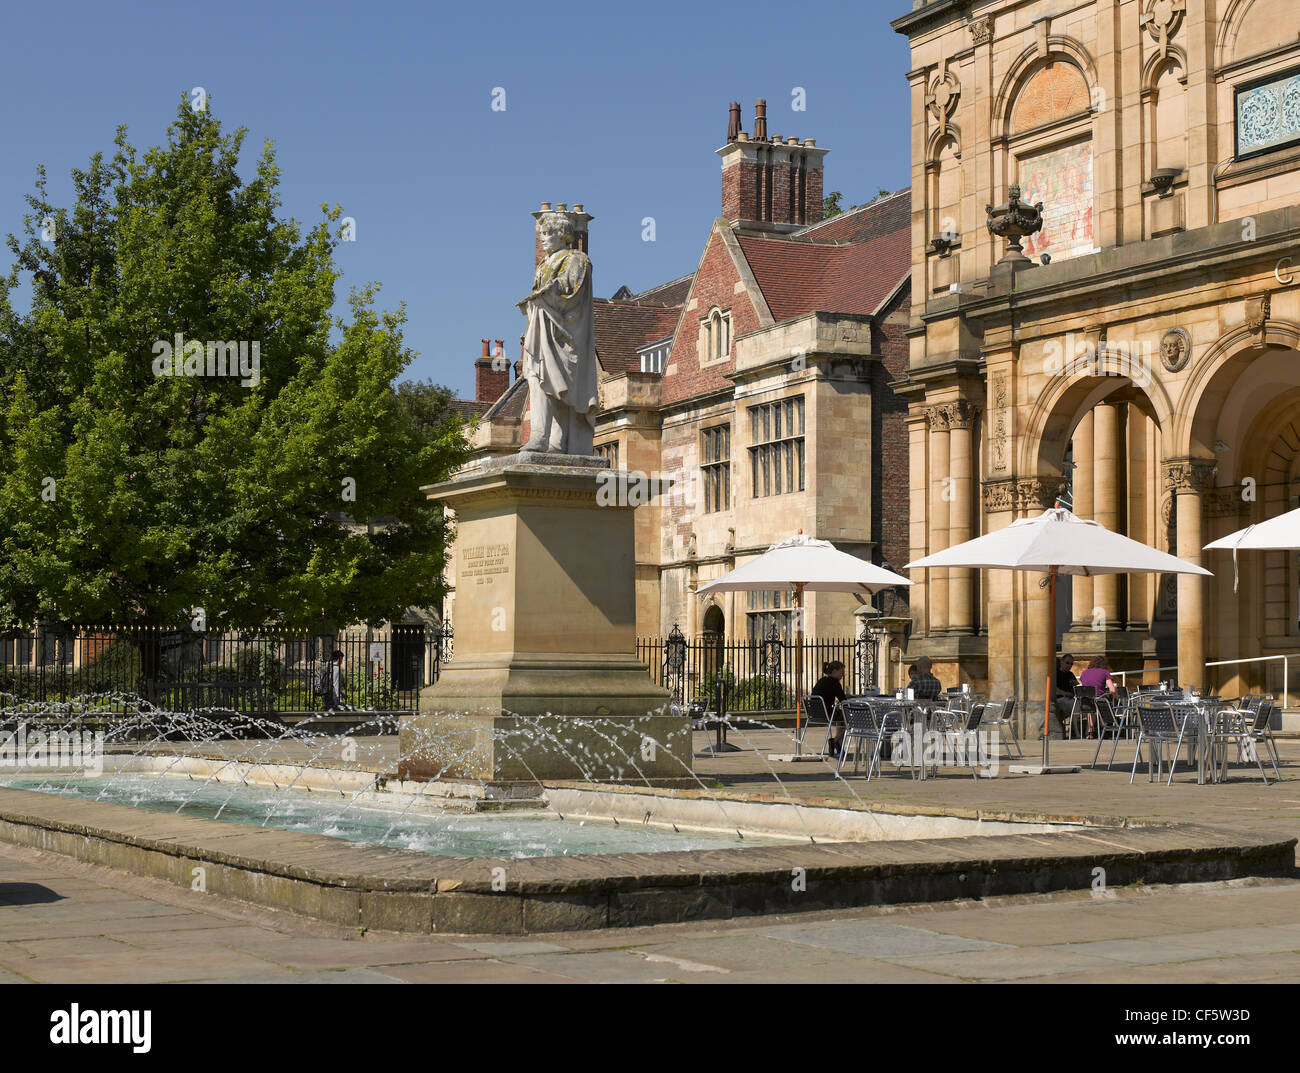 A life-size sculpture of William Etty (an English painter) outside York Art Gallery in Exhibition Square. - Stock Image